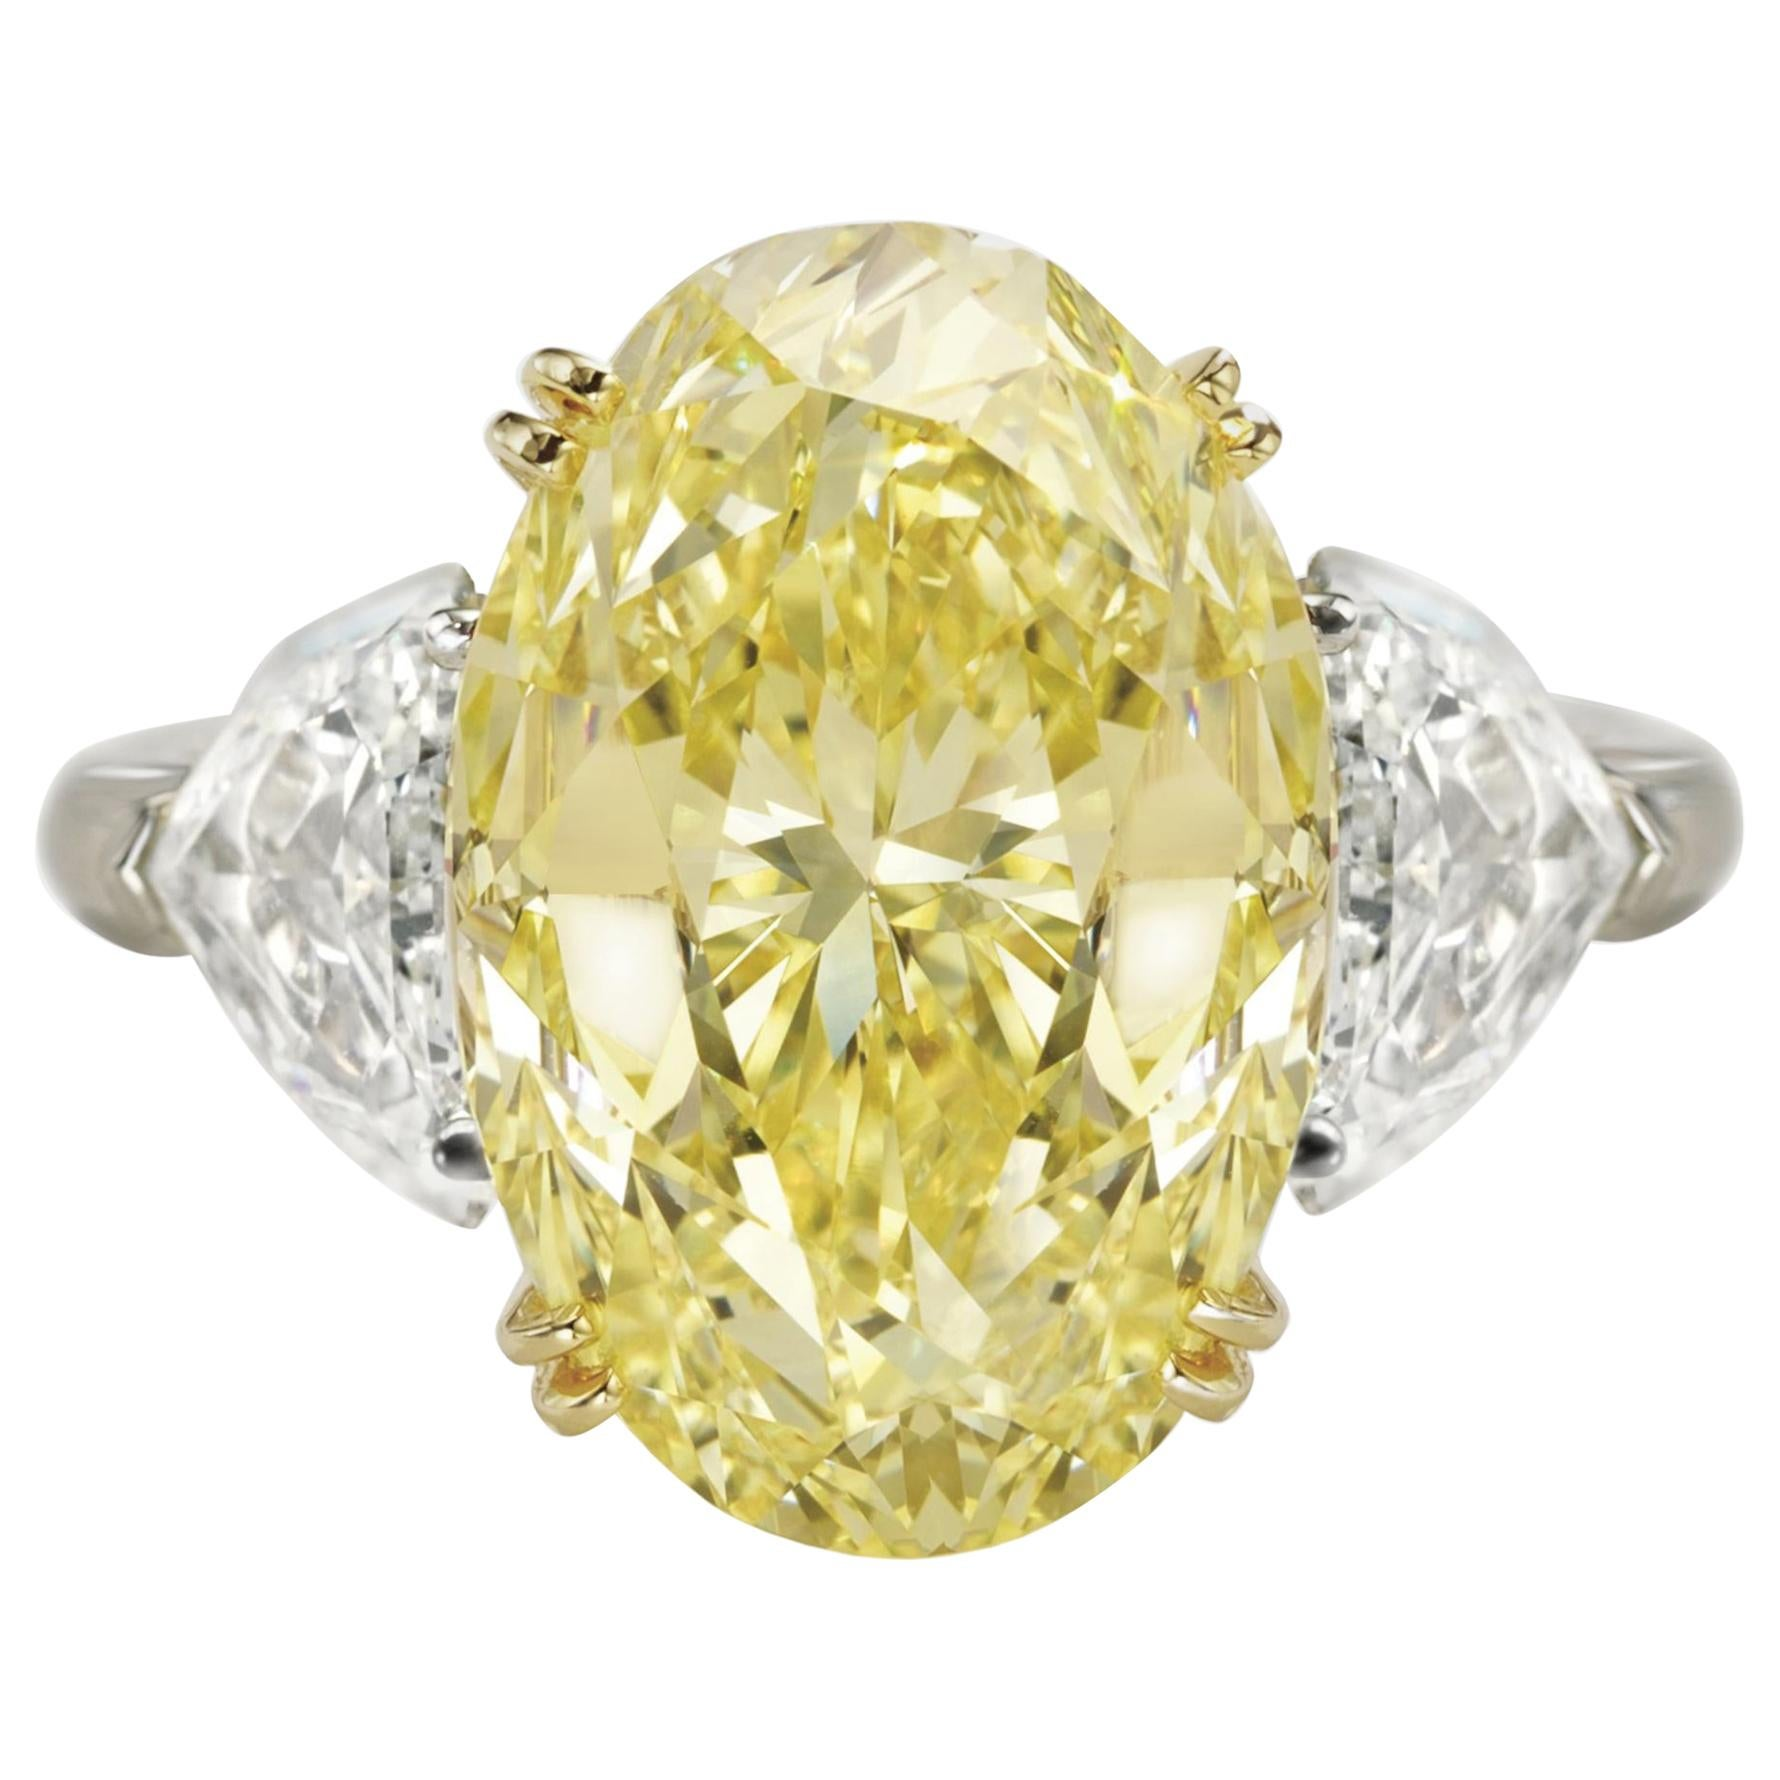 GIA Certified 5 Carat Fancy Yellow Oval and Half-Moon Diamond Ring vs2 clarity